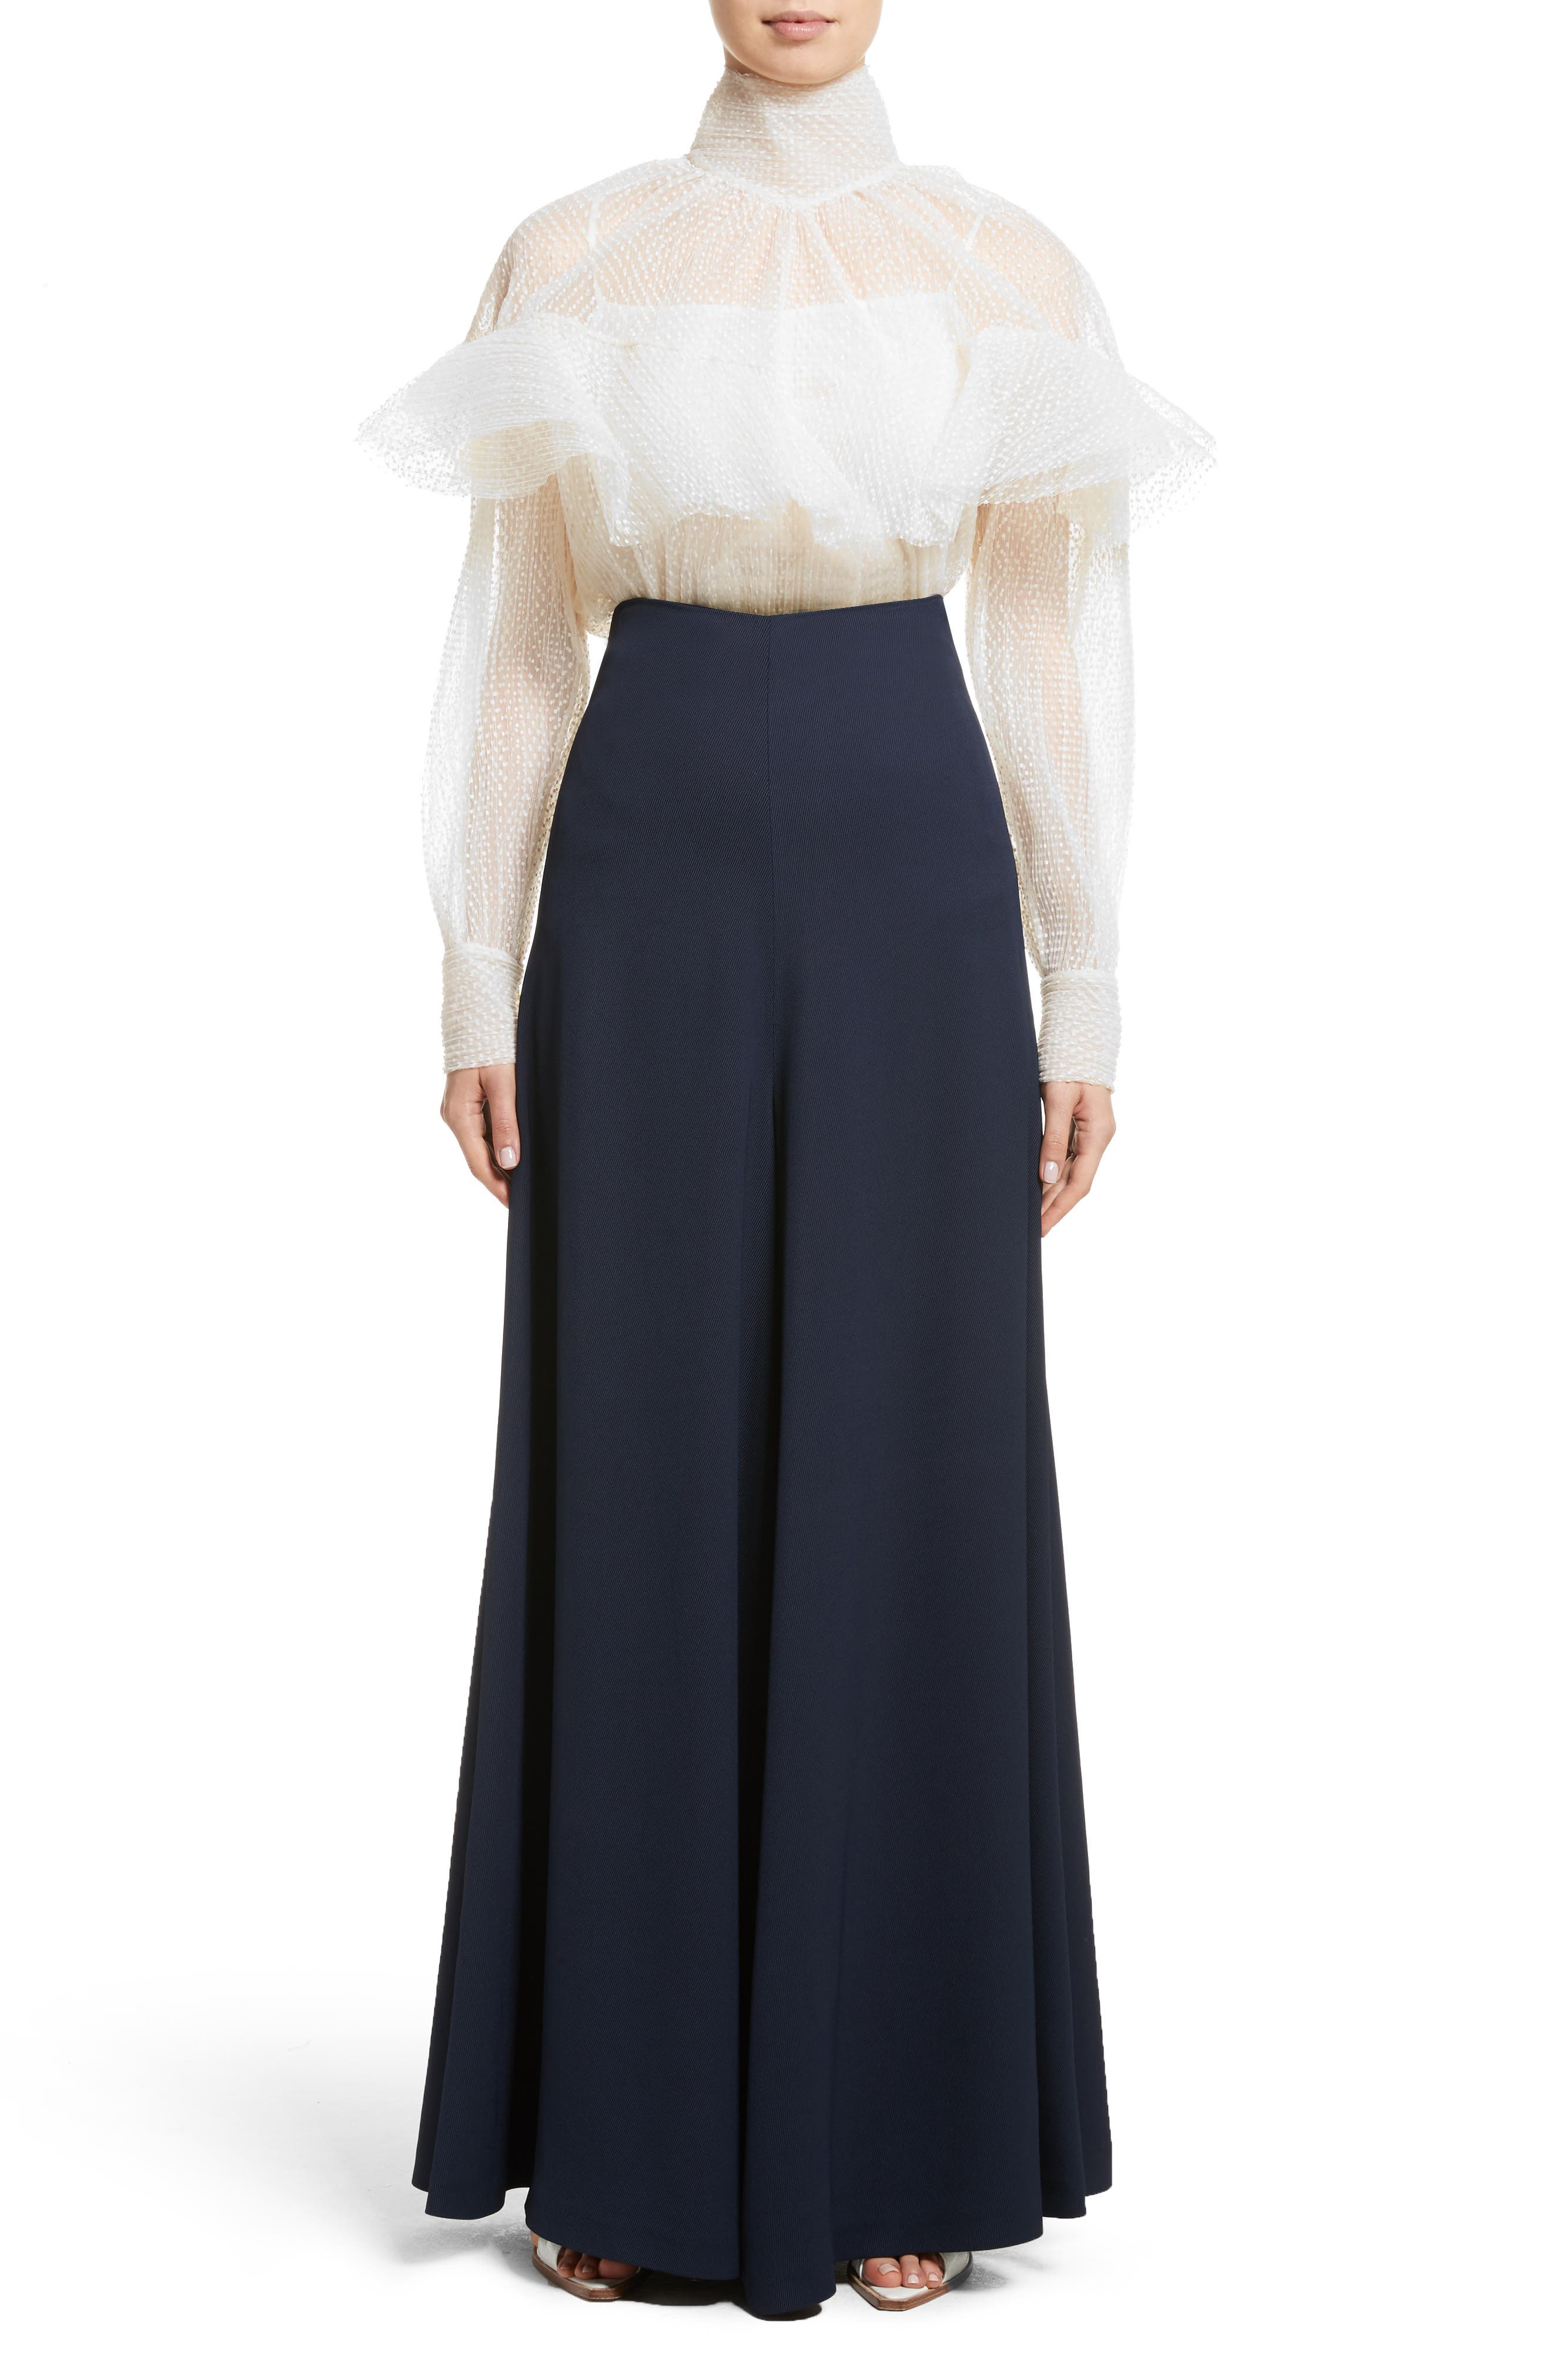 A.W.A.K.E Frill Double Layered Tulle Top,                             Alternate thumbnail 7, color,